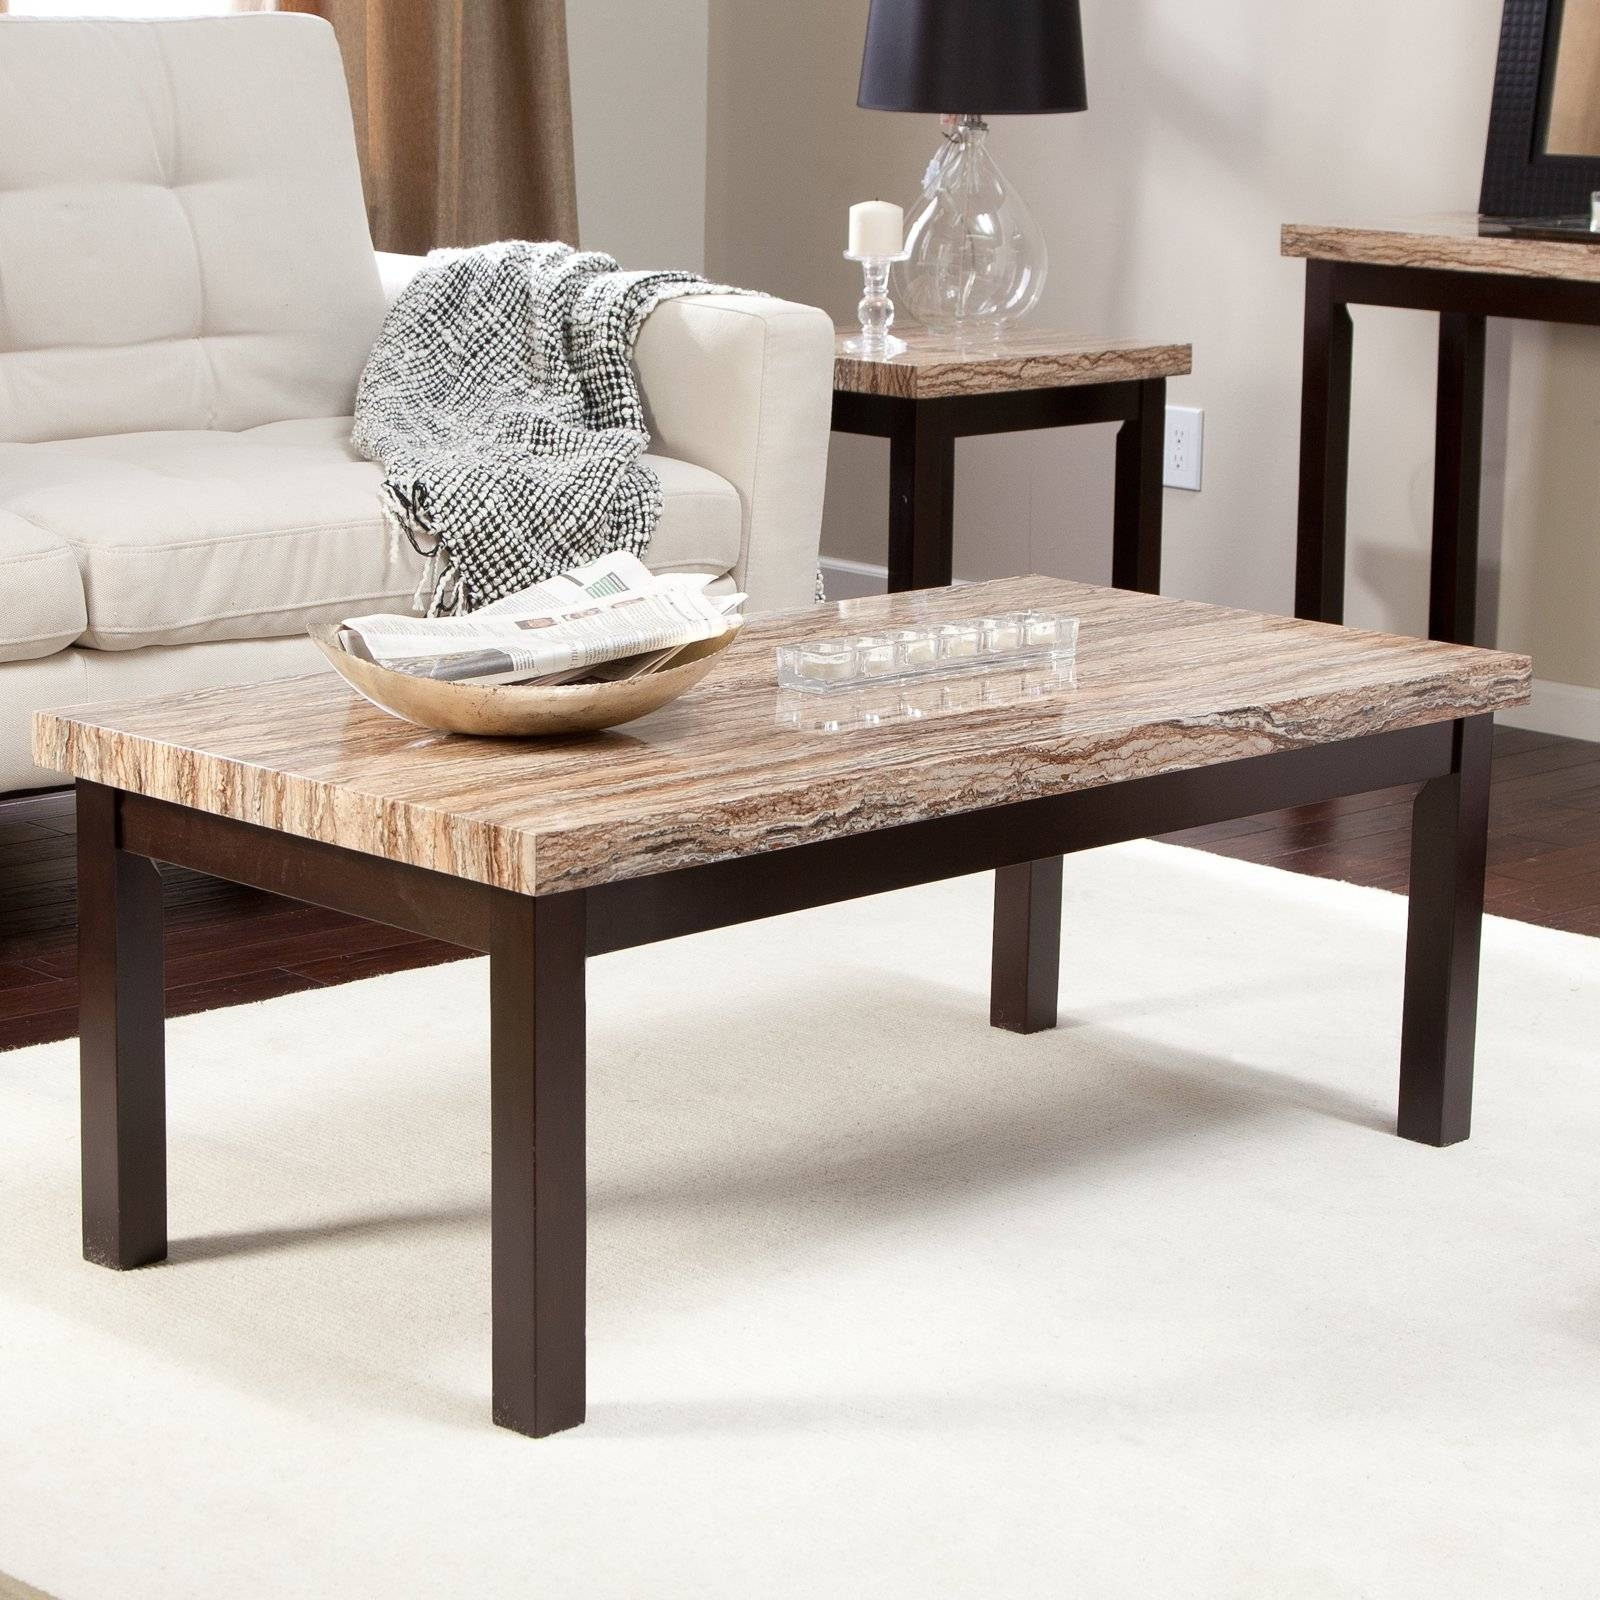 Carmine Faux Marble Coffee Table | Hayneedle throughout Marble Coffee Tables (Image 6 of 30)